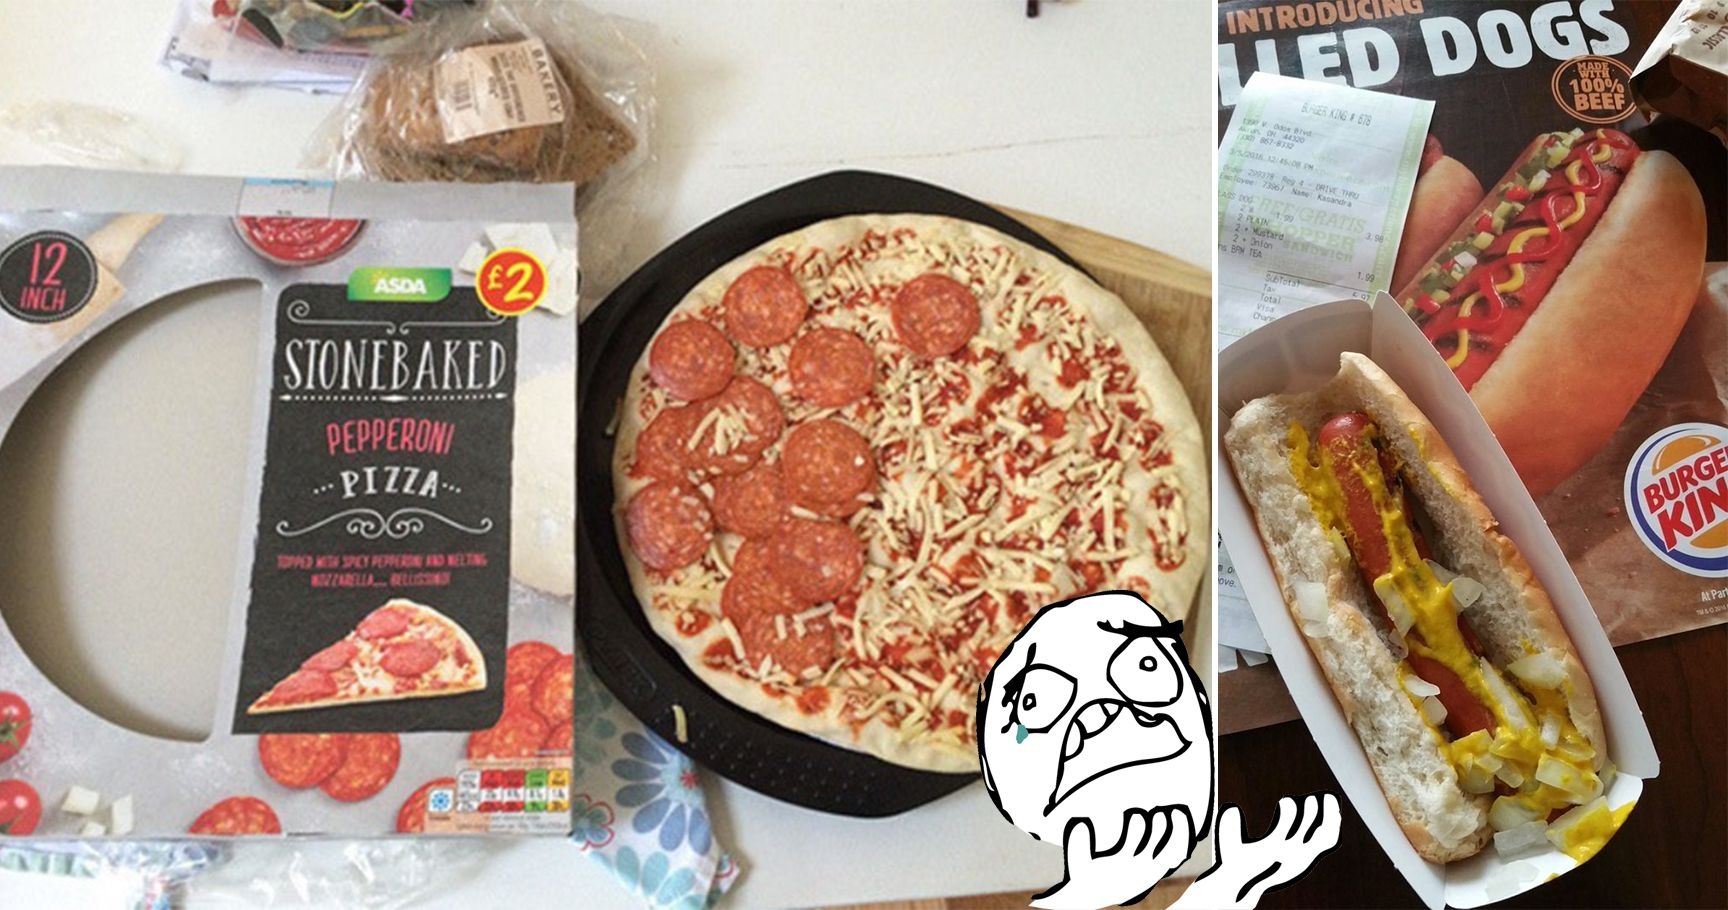 15 Pictures Of Food That Give Us Serious Trust Issues